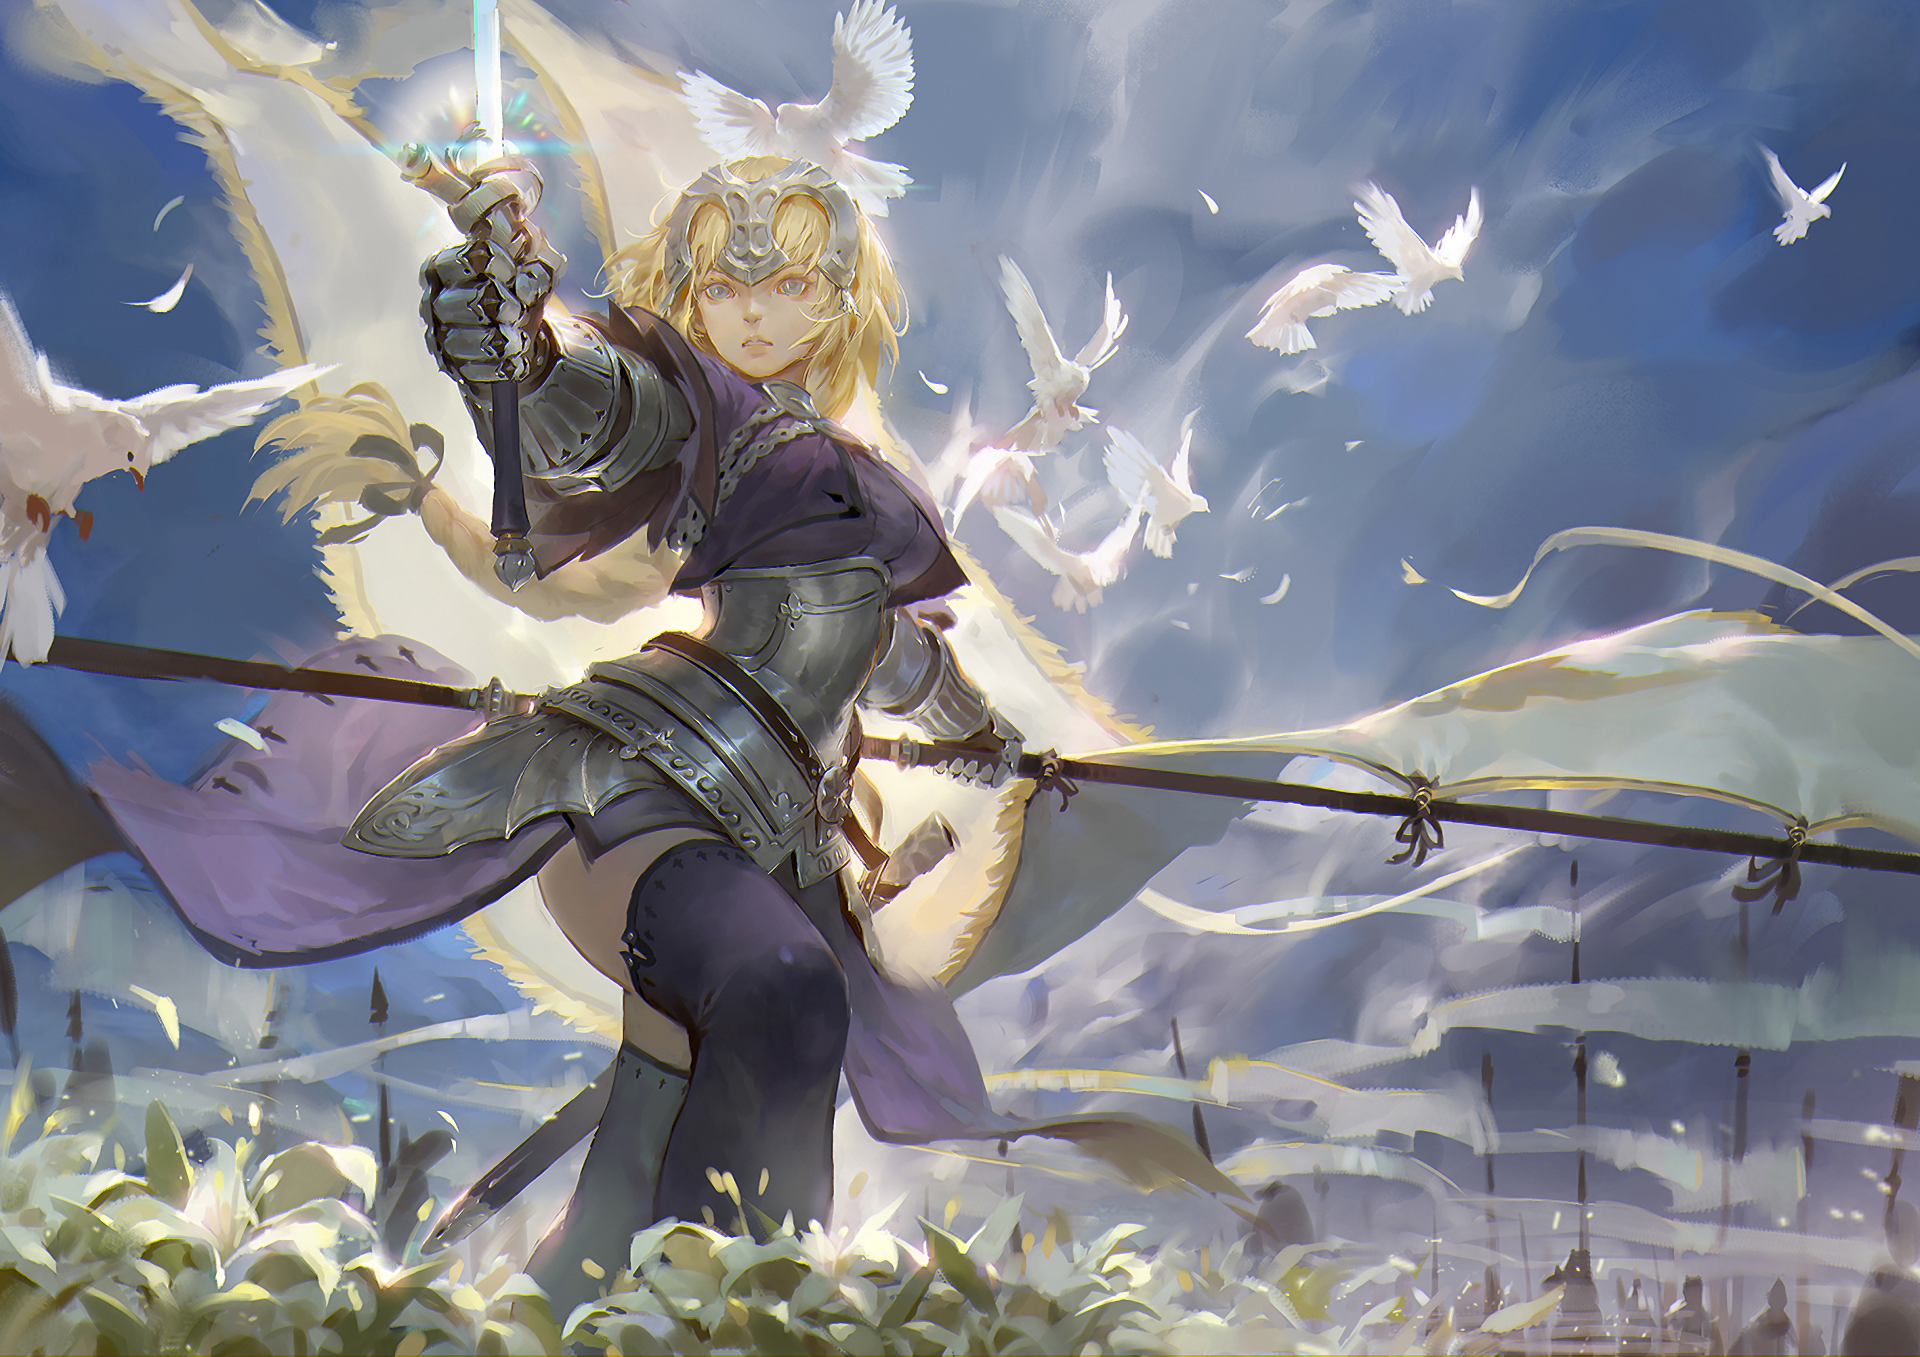 Fate Apocrypha Full Hd Wallpaper And Background Image